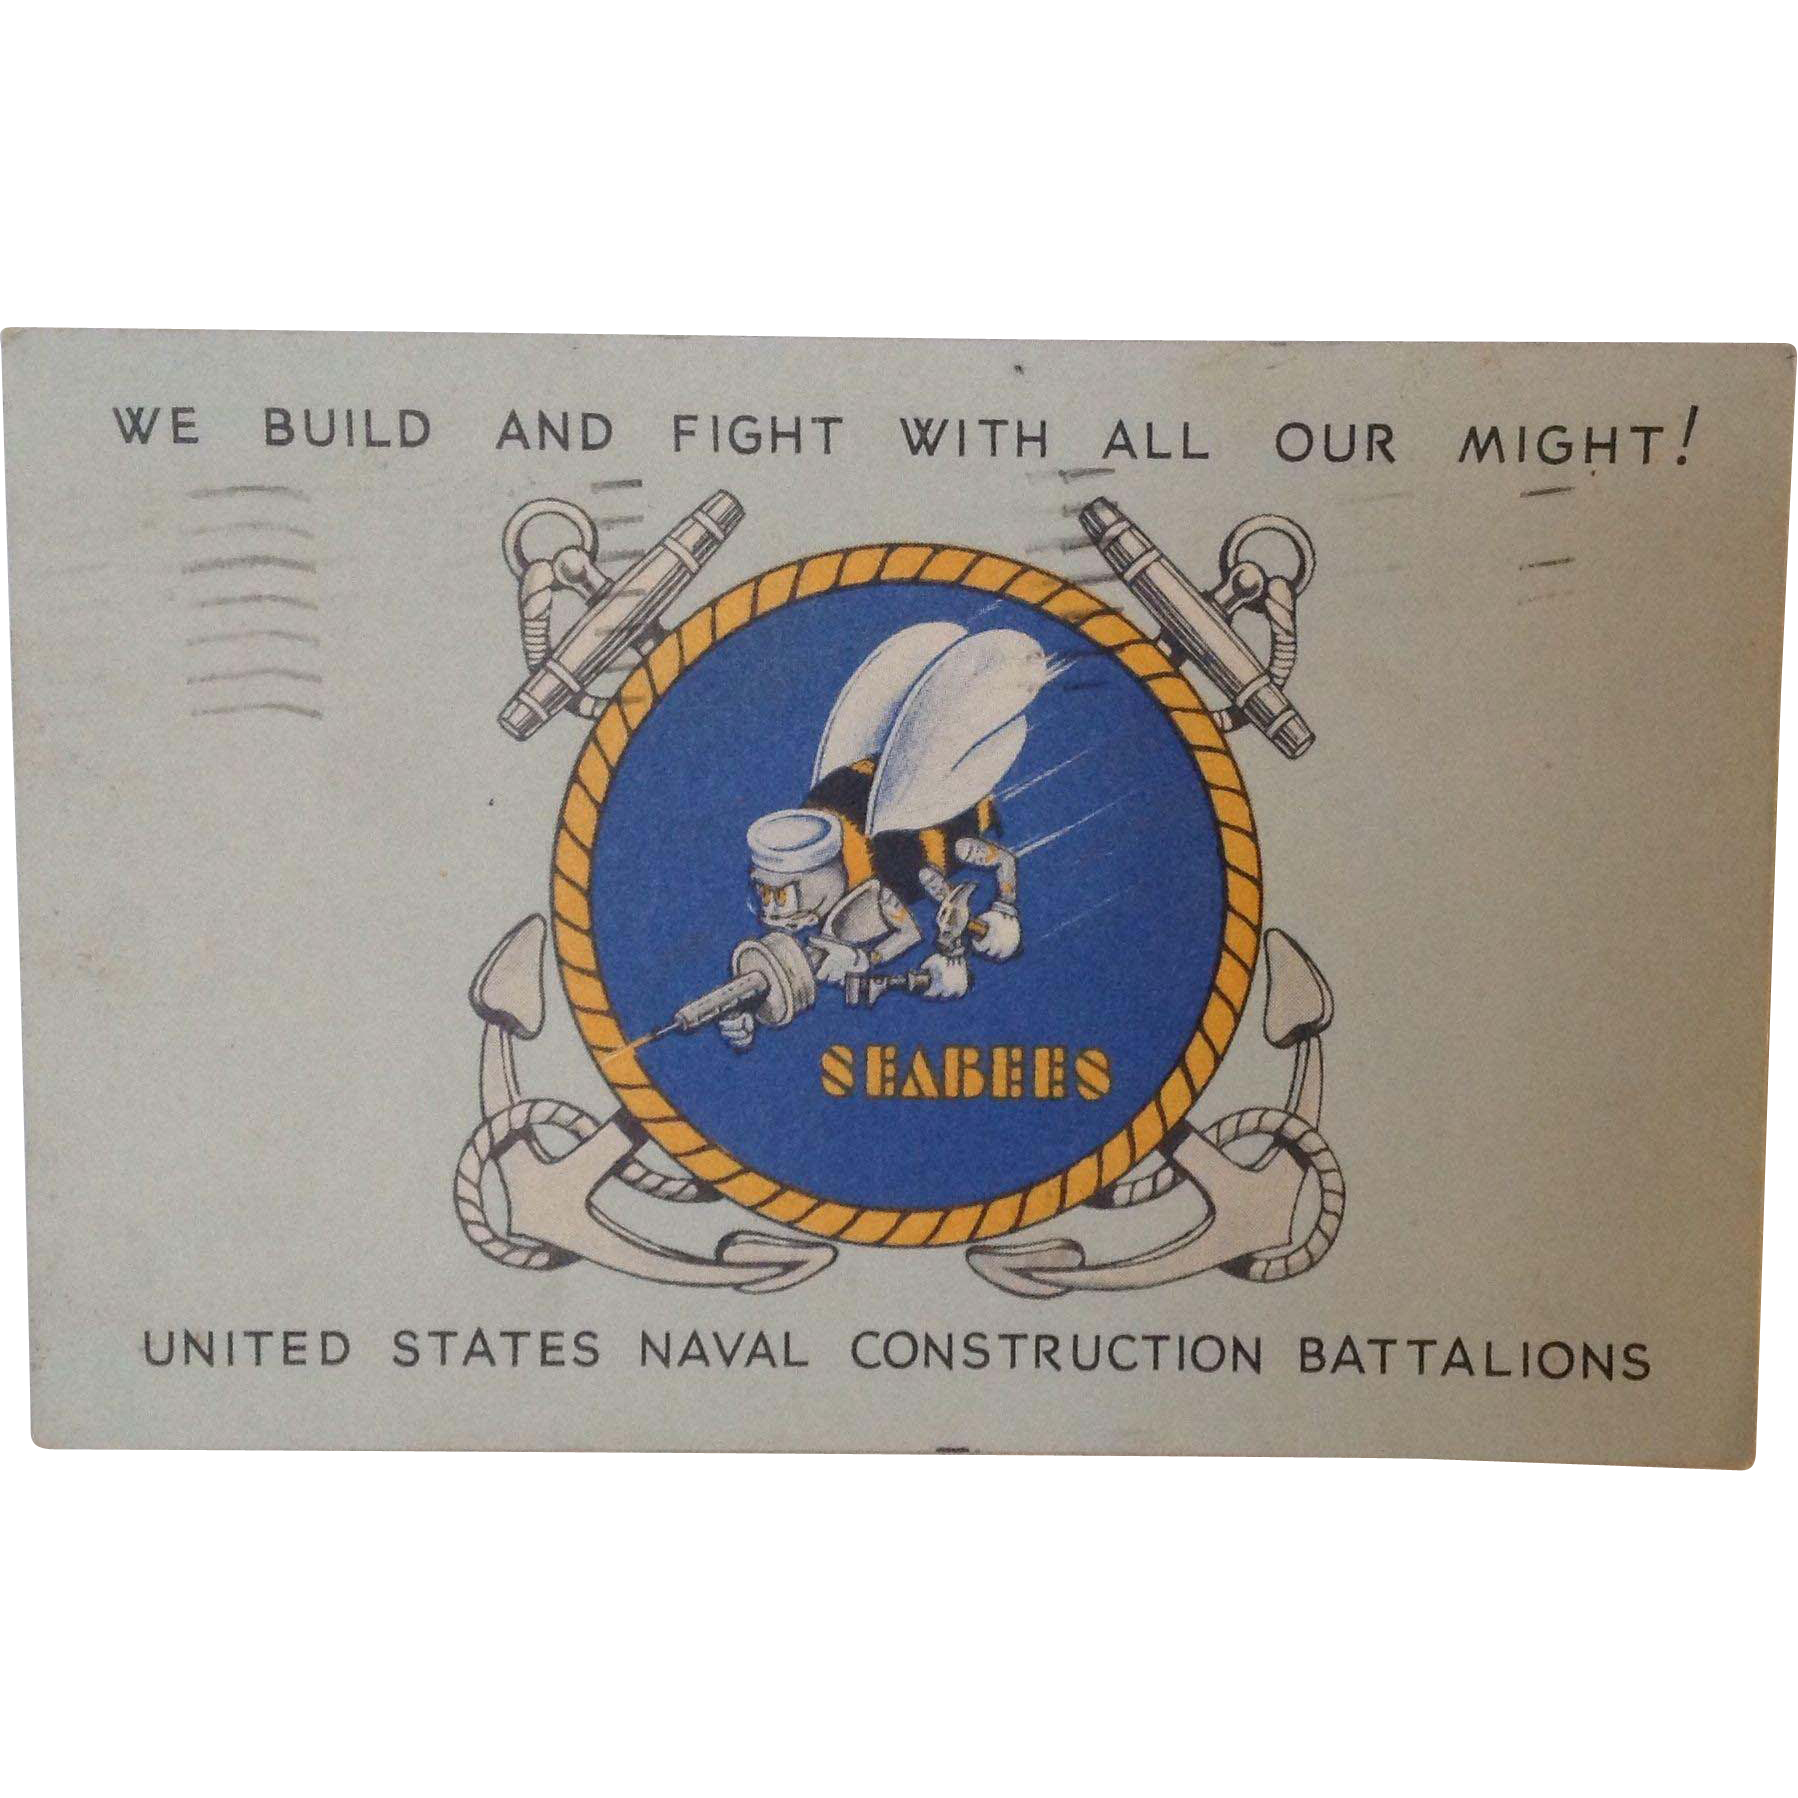 1943 World War II Seabees Postcard with sad message